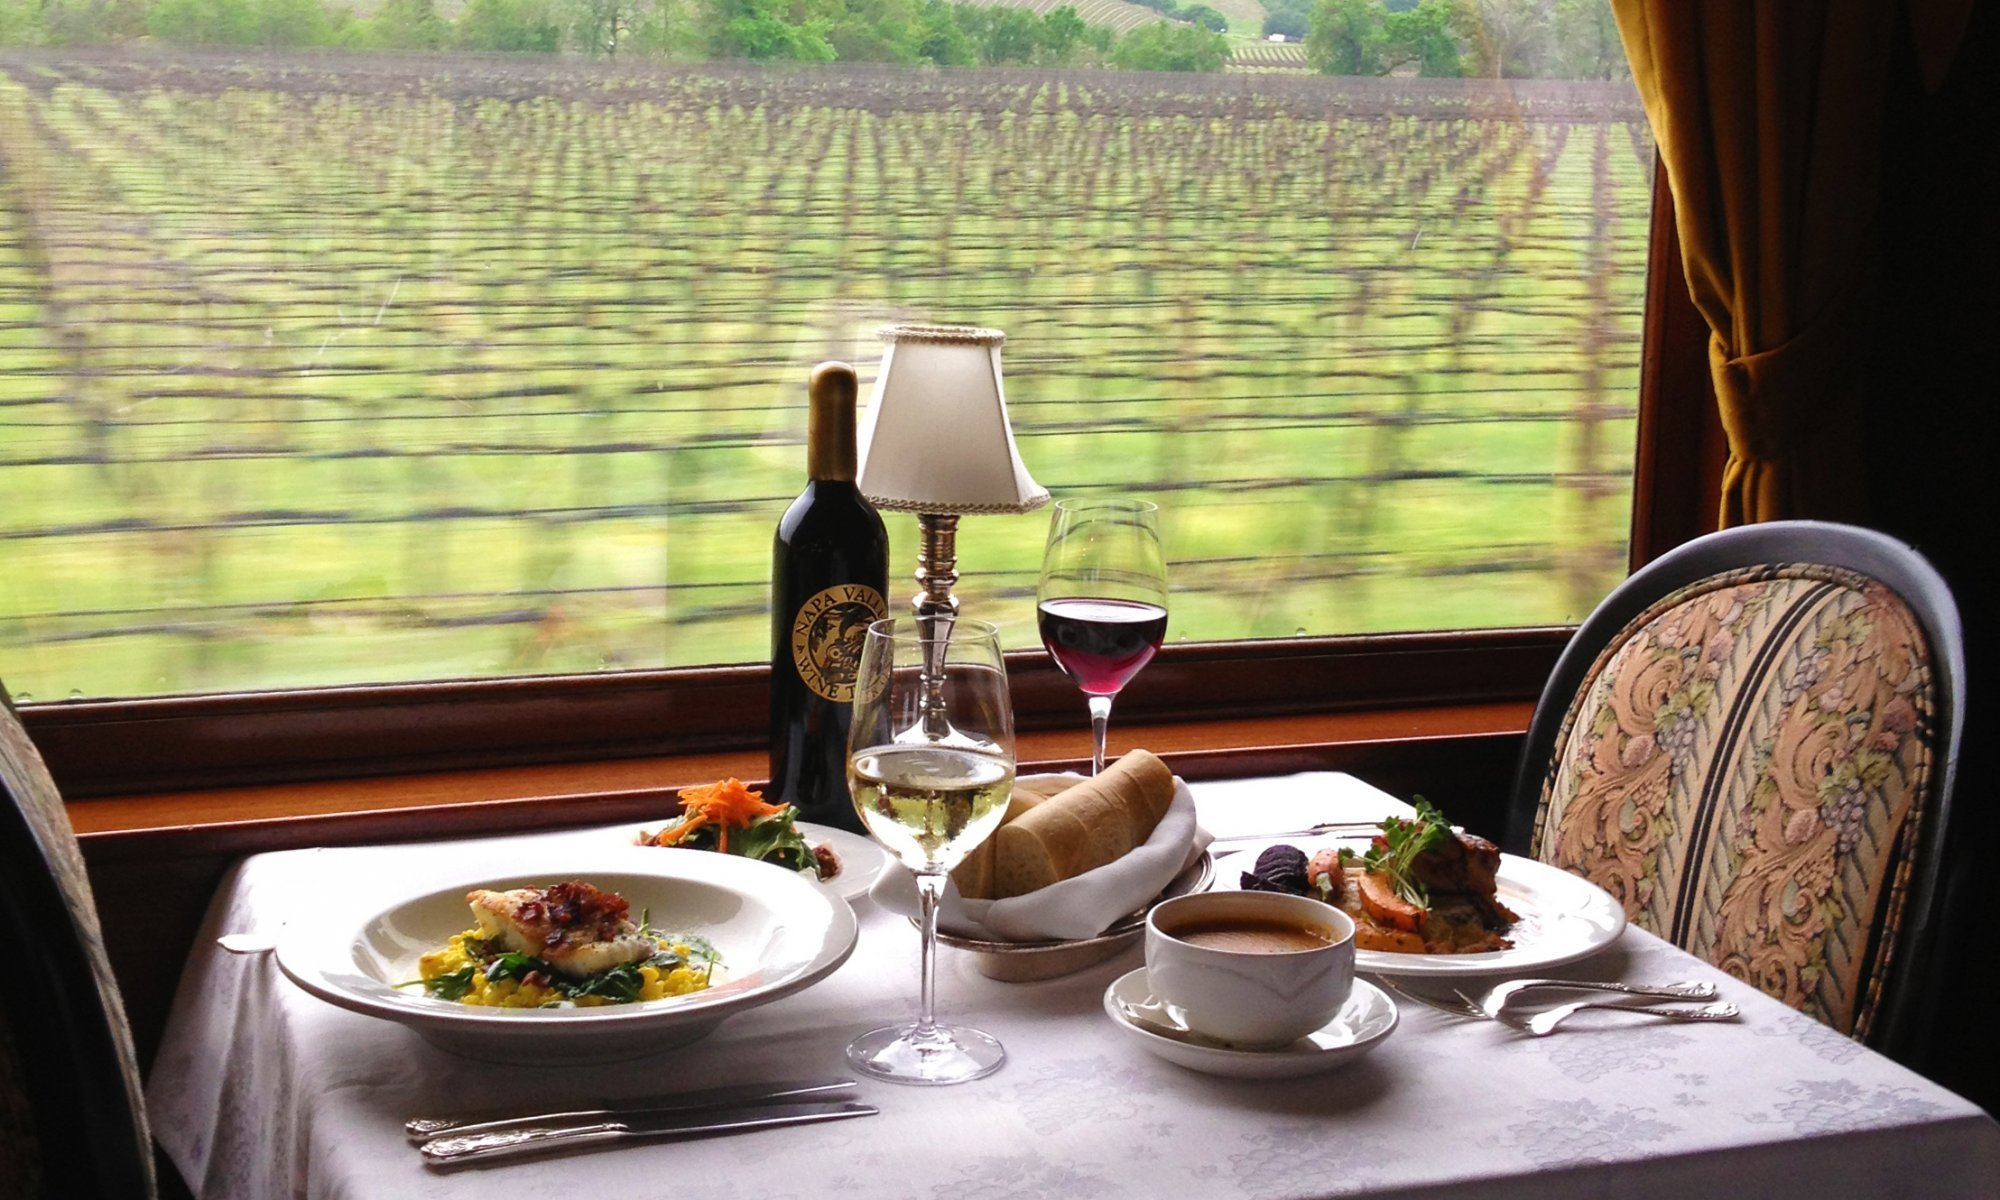 A dining table with two glasses of wine and 2 meals aboard the Napa Valley Wine Train